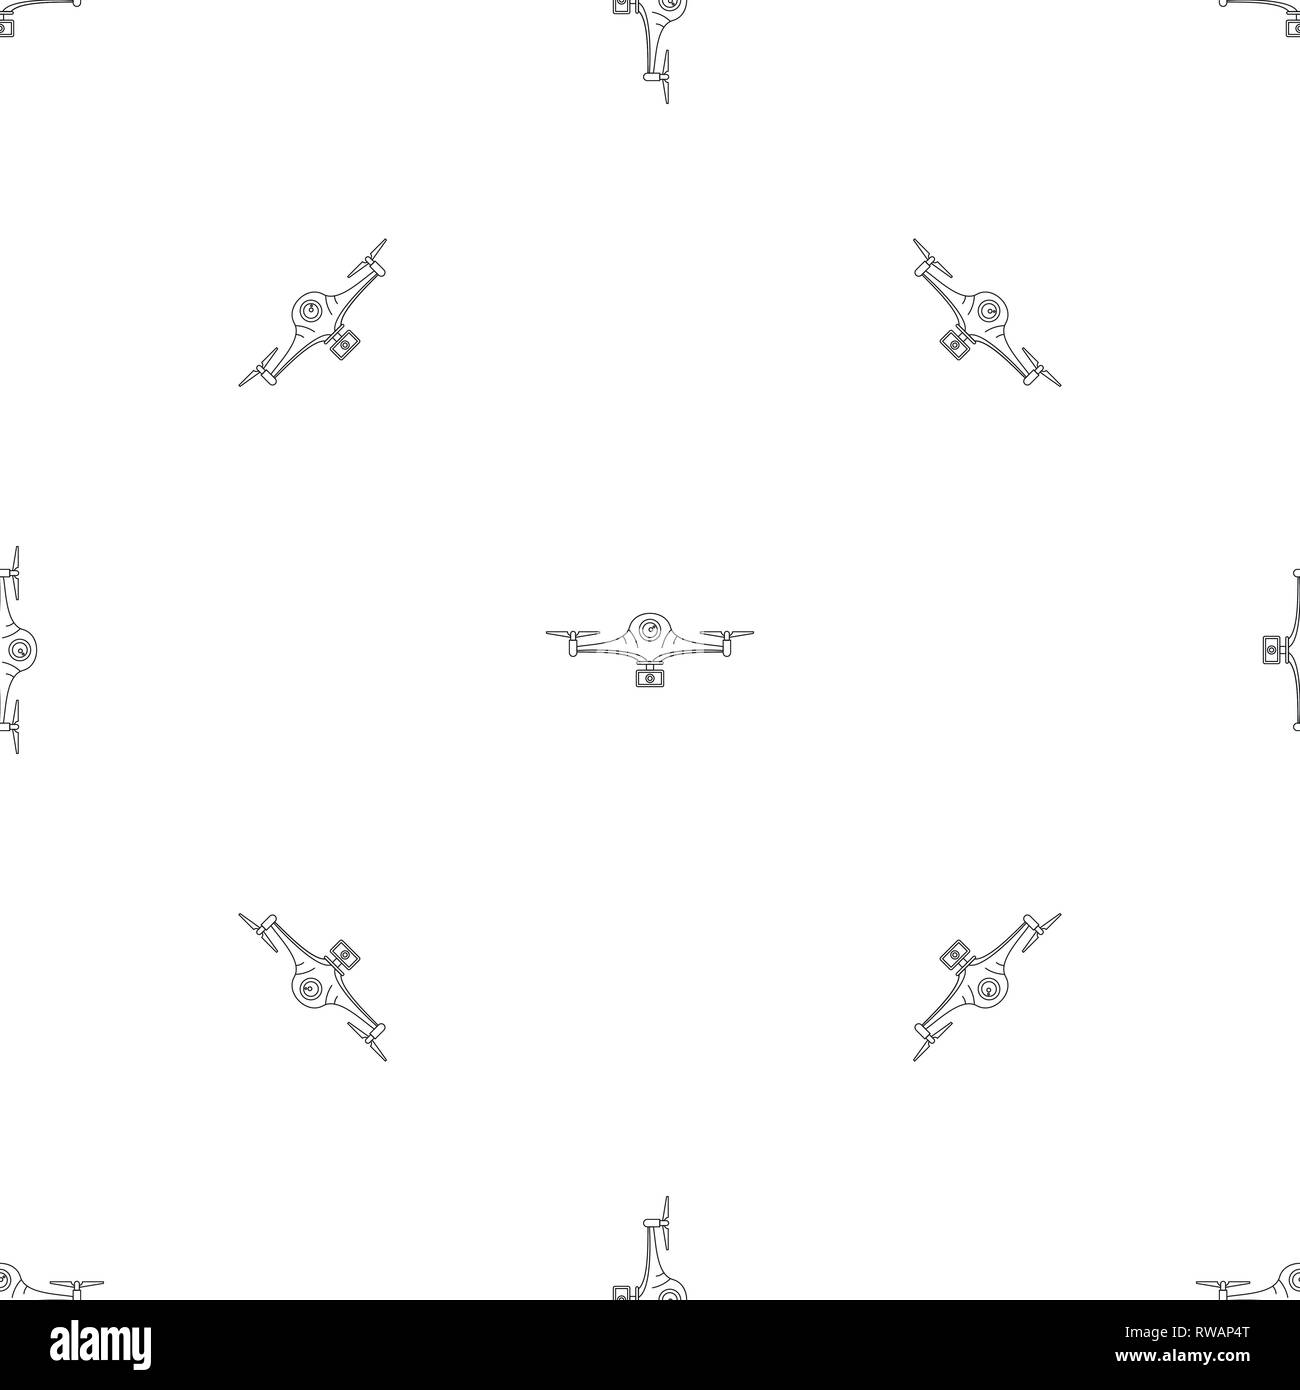 Aerial drone pattern seamless vector repeat geometric for any web design - Stock Image